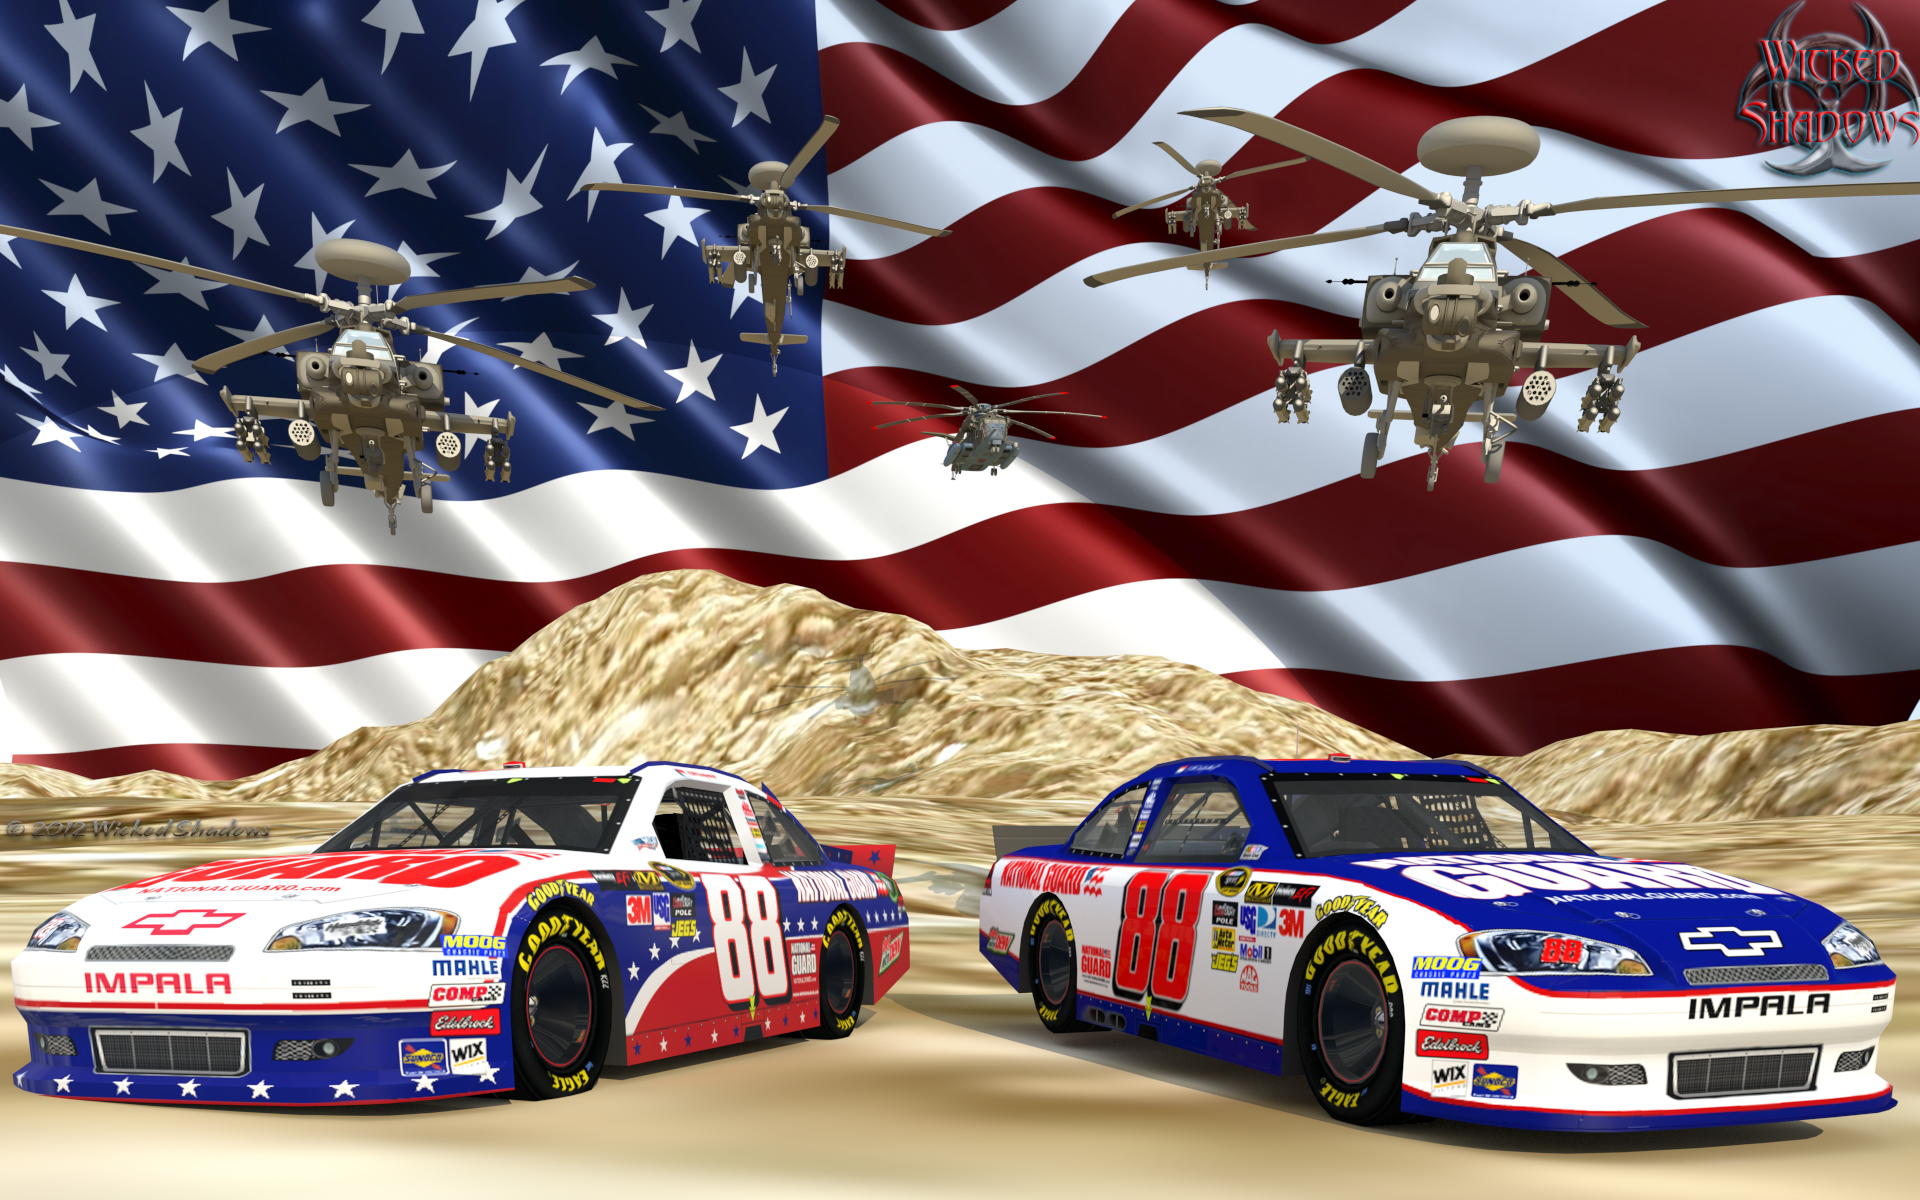 50 Nascar Hd Wallpapers On Wallpapersafari: [50+] Free NASCAR Wallpaper And Screensavers On